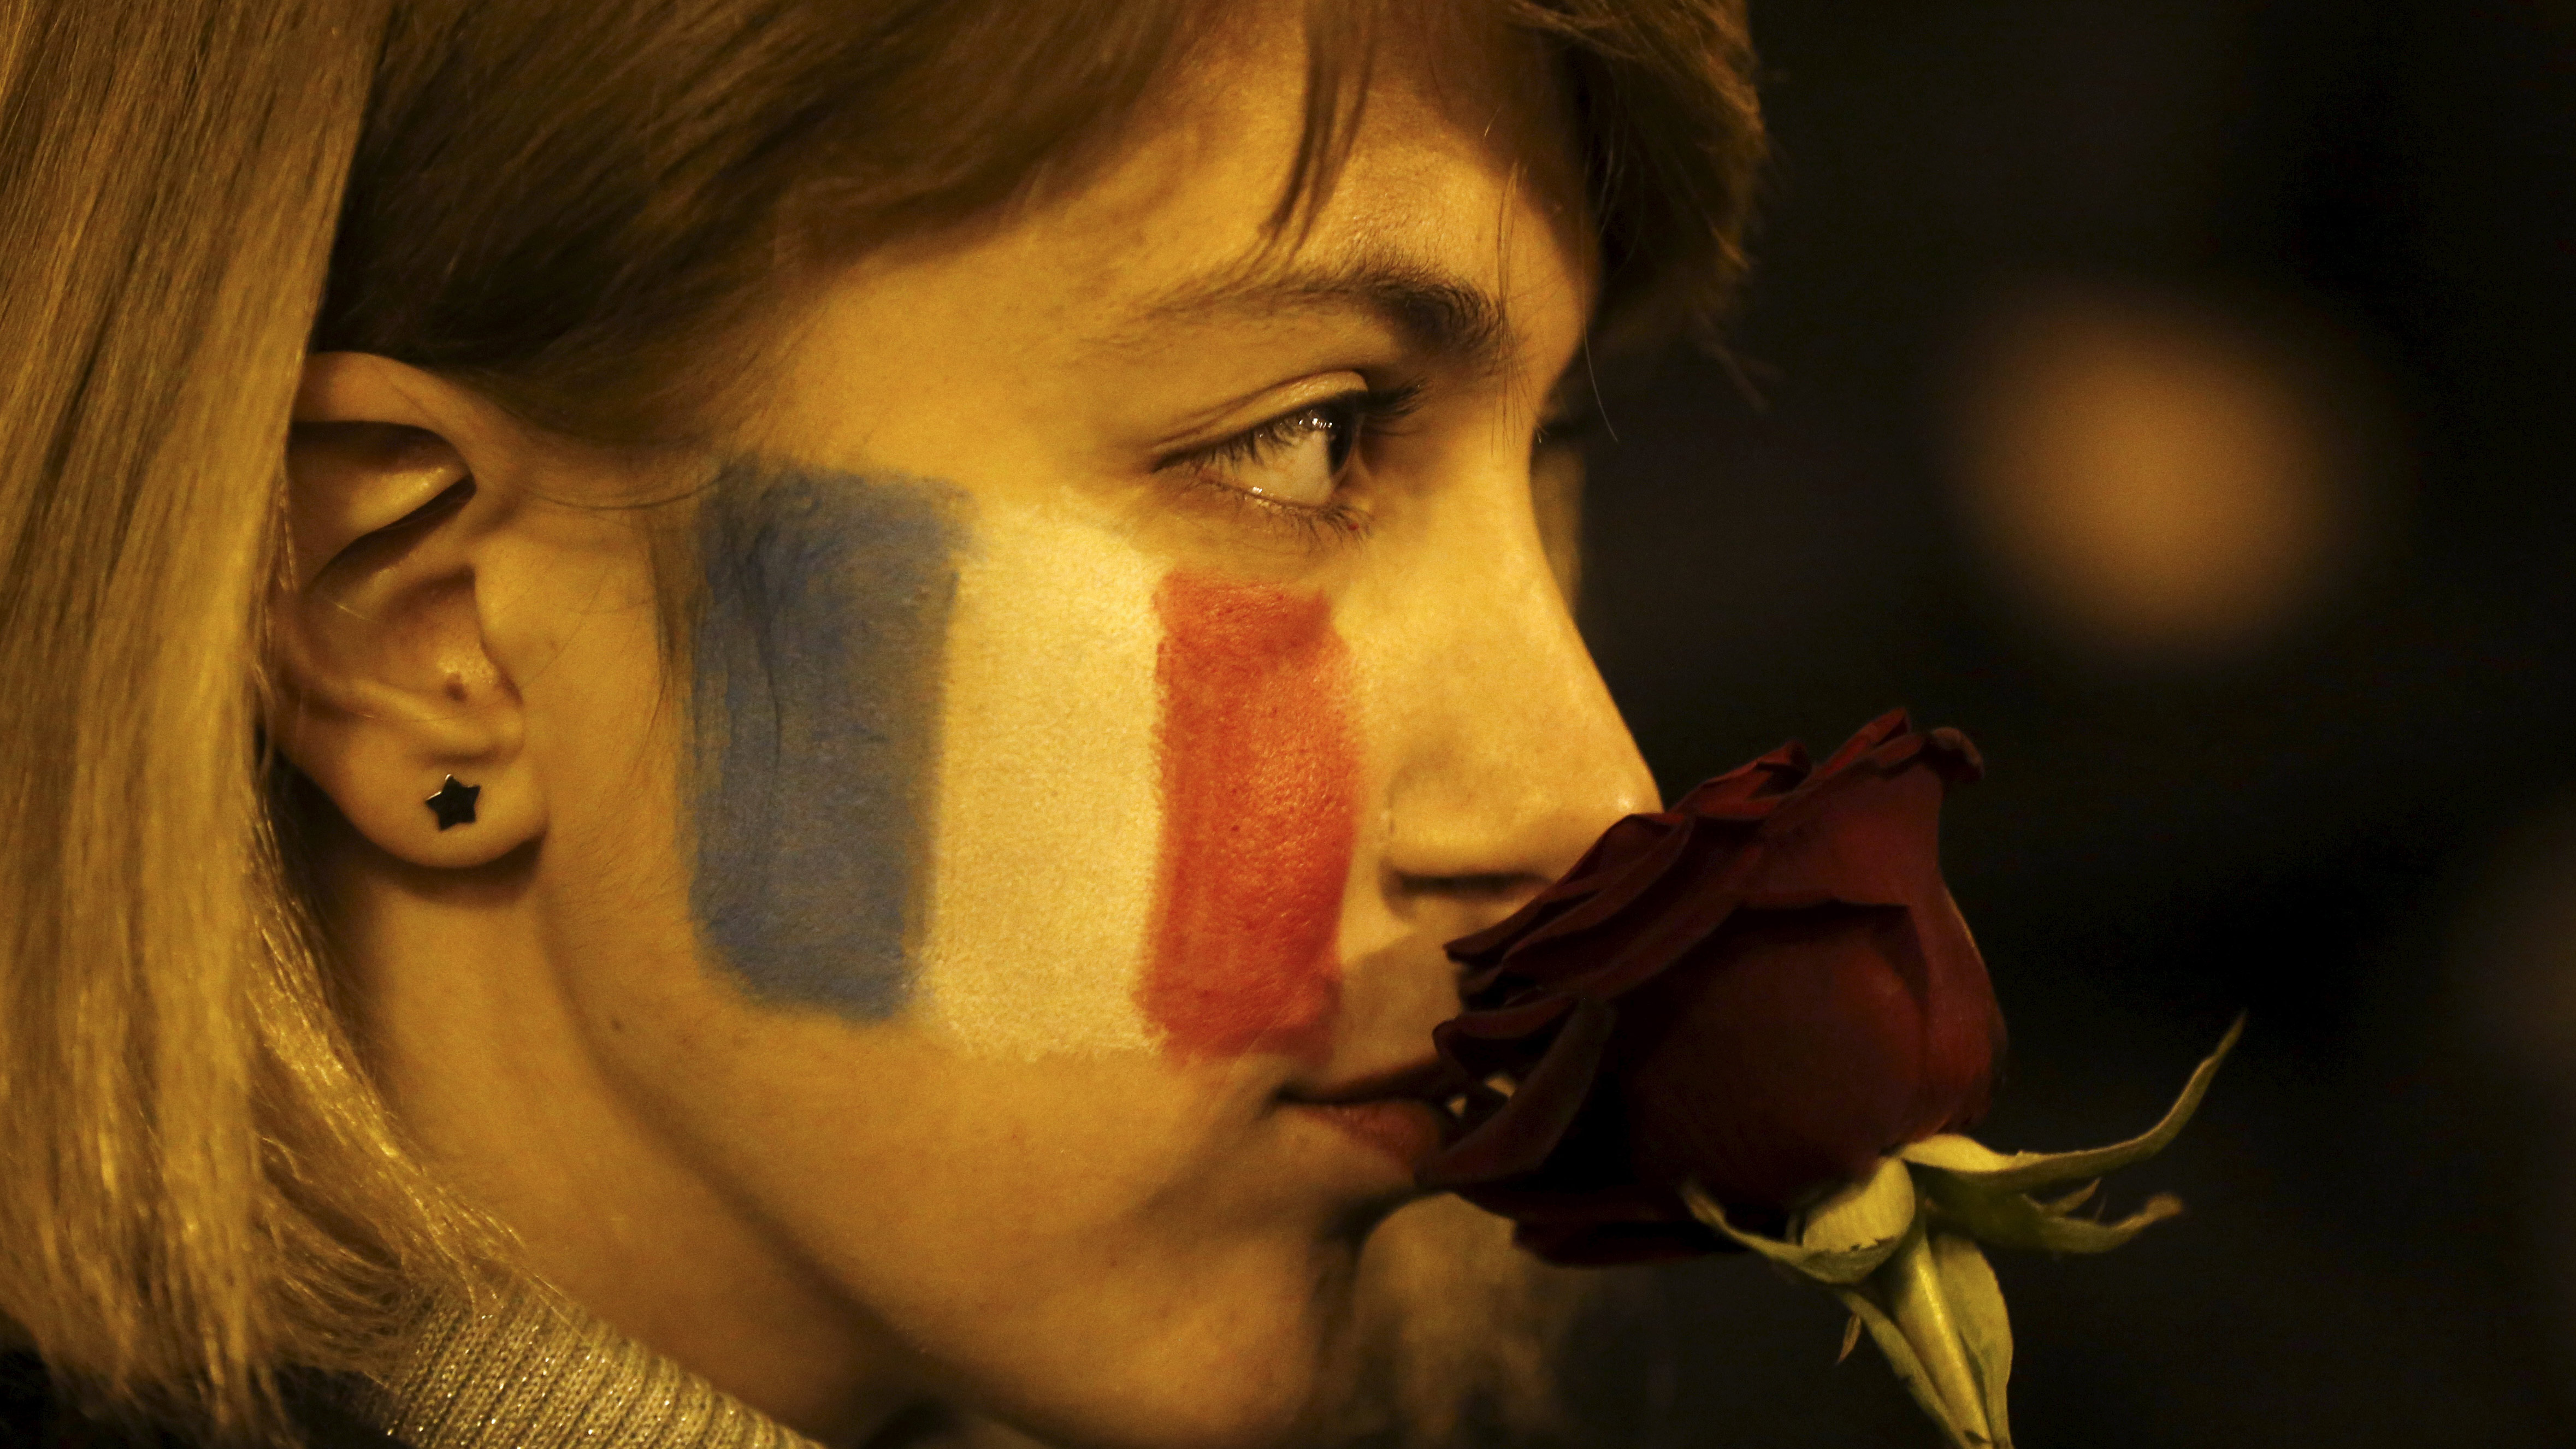 In Solidarity With France, Tributes Spring up Across the Globe